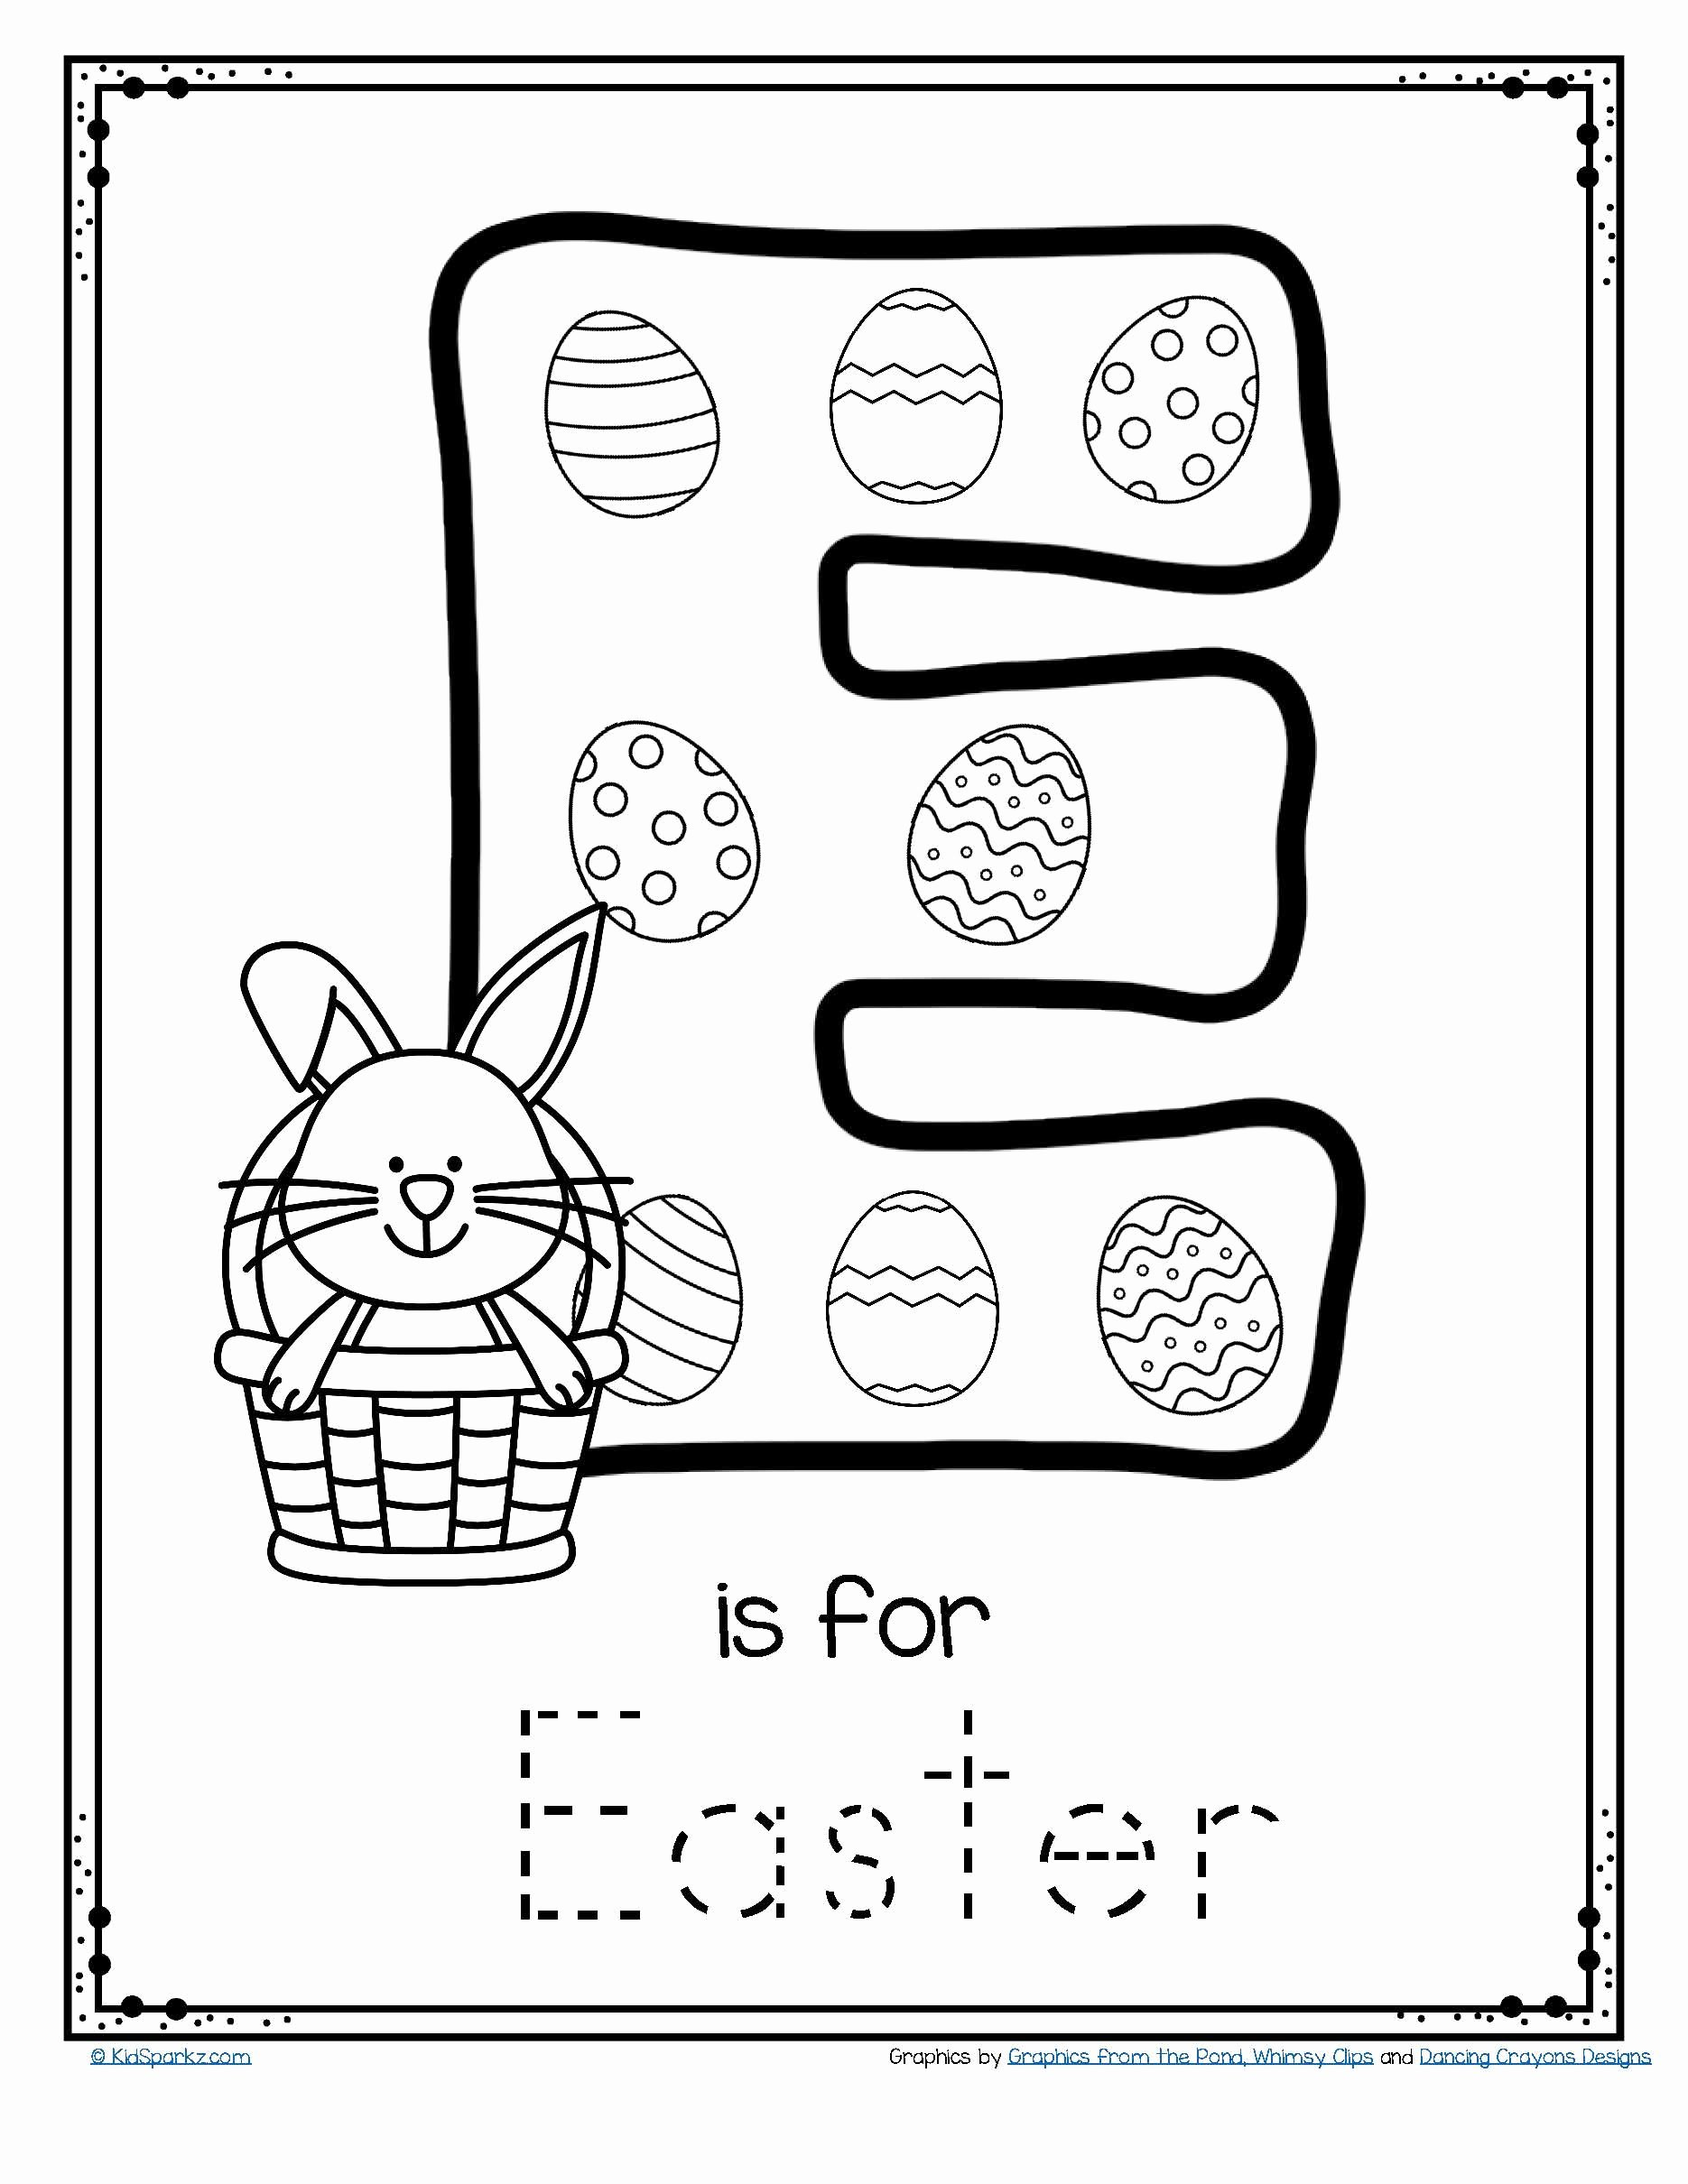 Coloring Activity Worksheets for Preschoolers top Worksheets Preschool Worksheet Printable Worksheets and